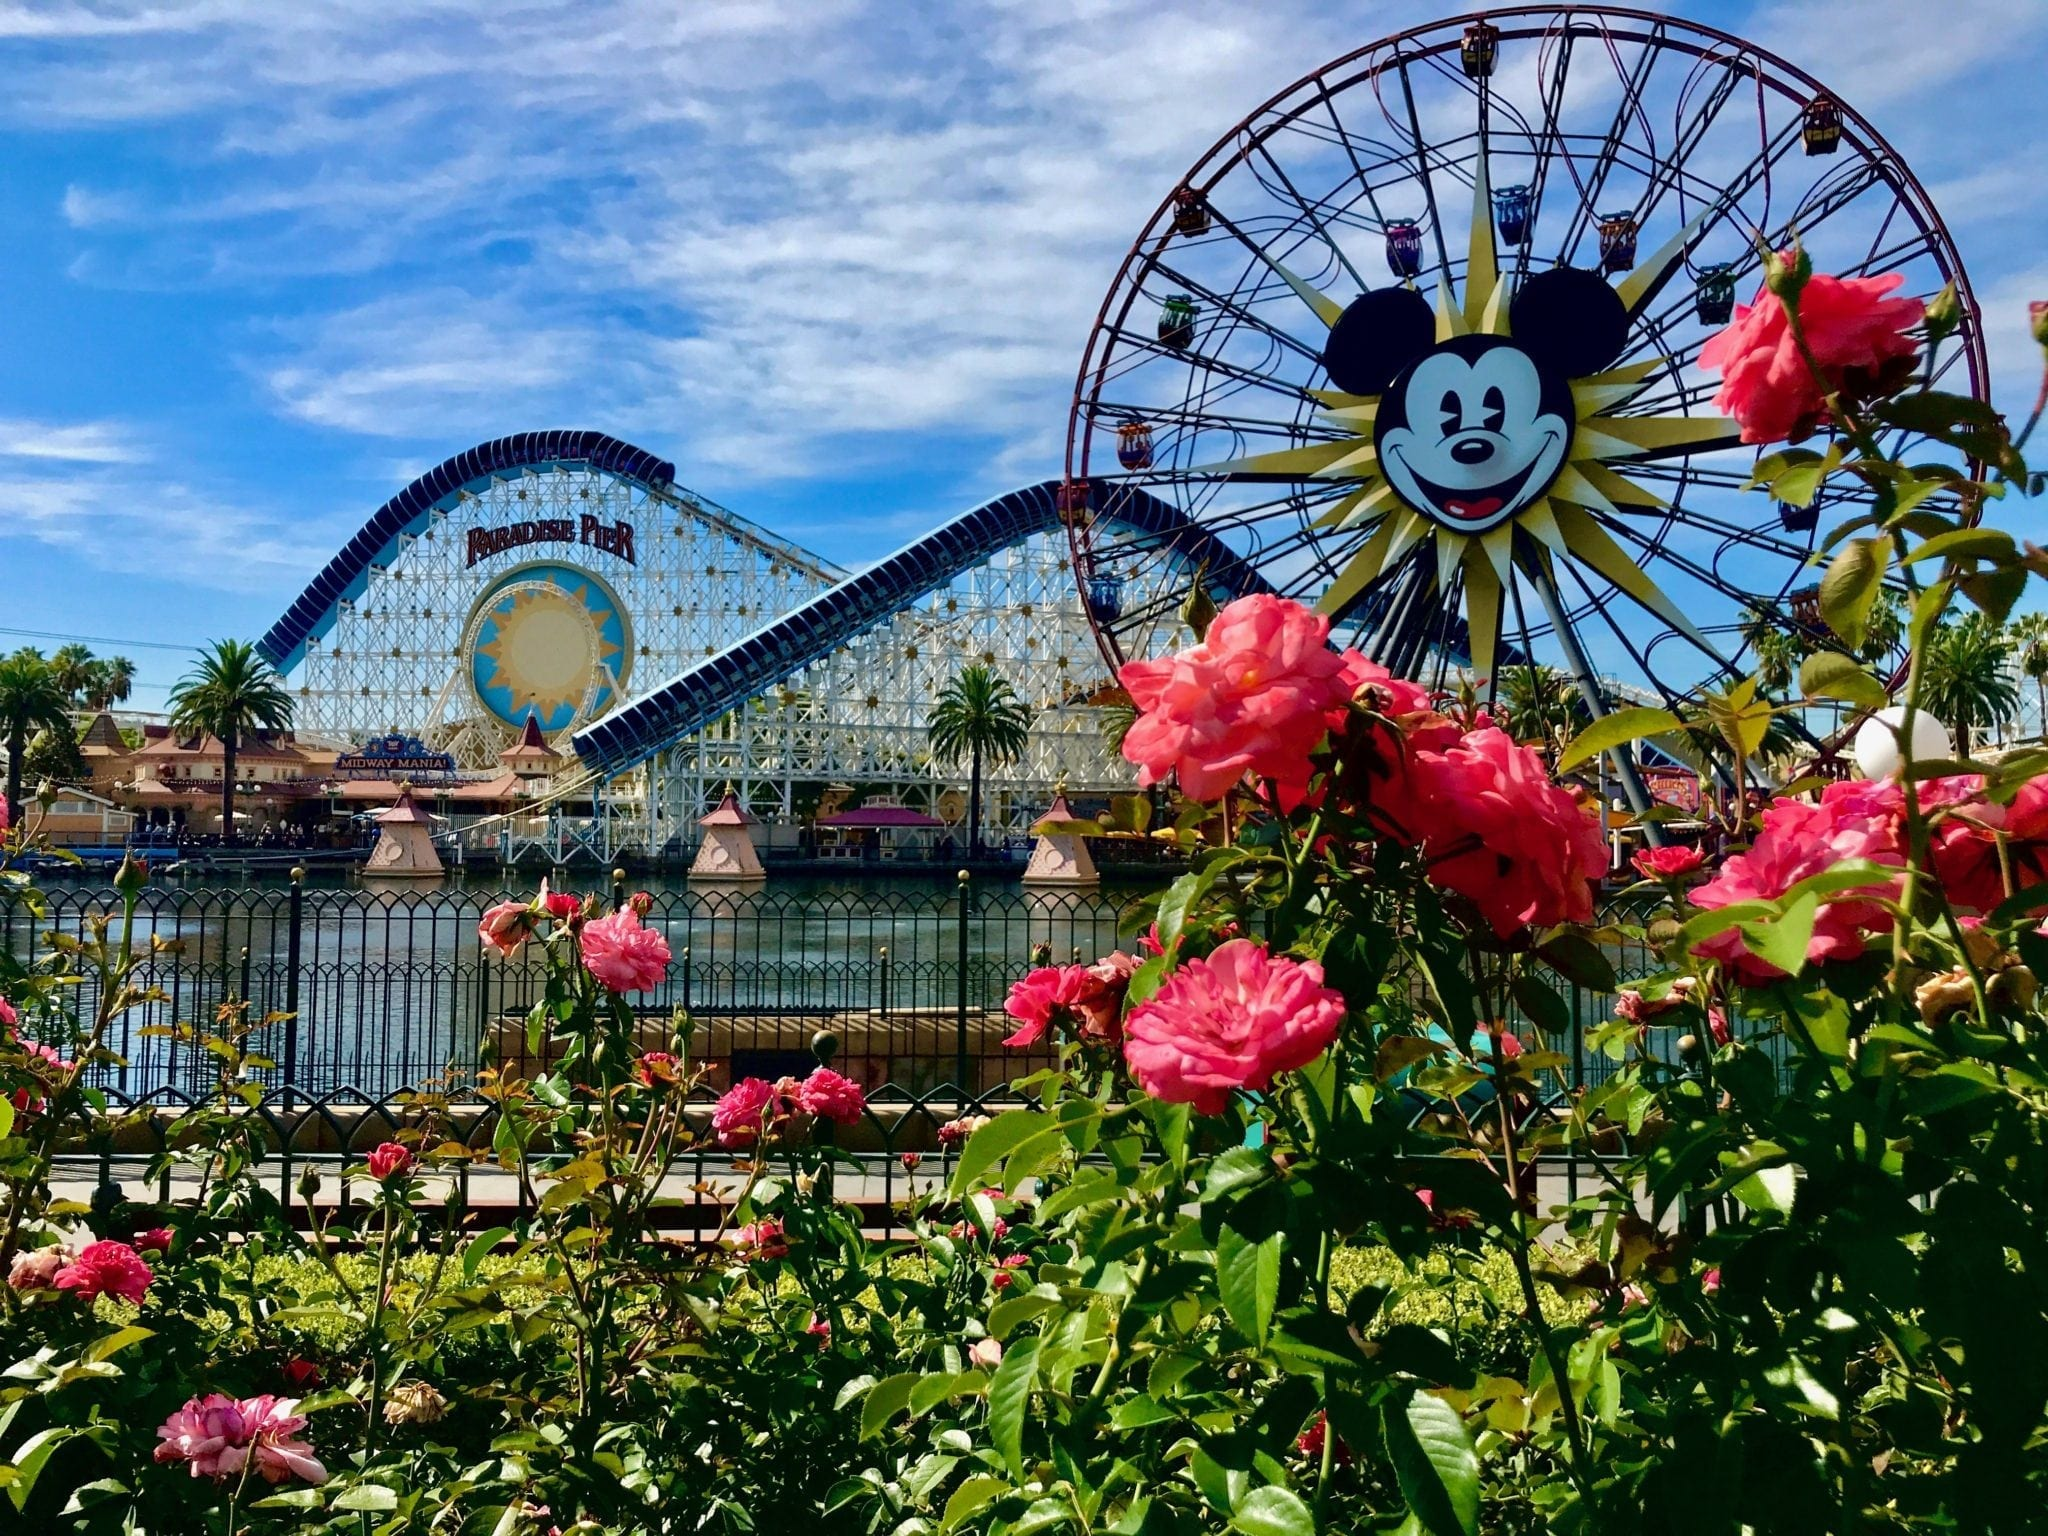 Top 5 Rides at California Adventure Park